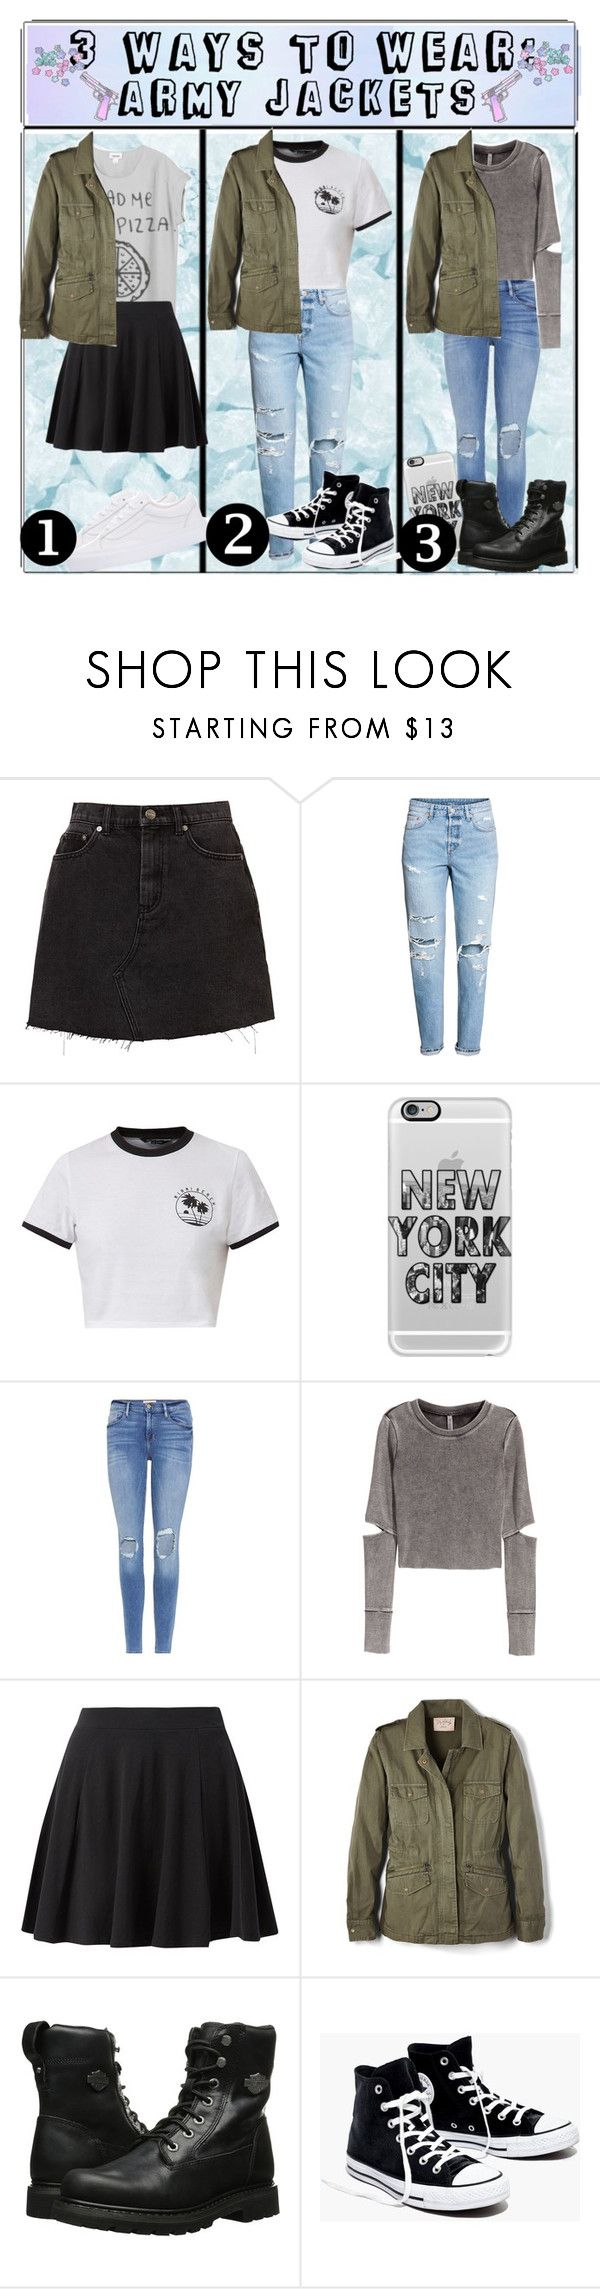 """3 ways to wear: army jackets"" by switchkid ❤ liked on Polyvore featuring H&M, Casetify, Frame, Velvet by Graham & Spencer, Harley-Davidson, Madewell, Vans, 3waystowear and threewaystowear"